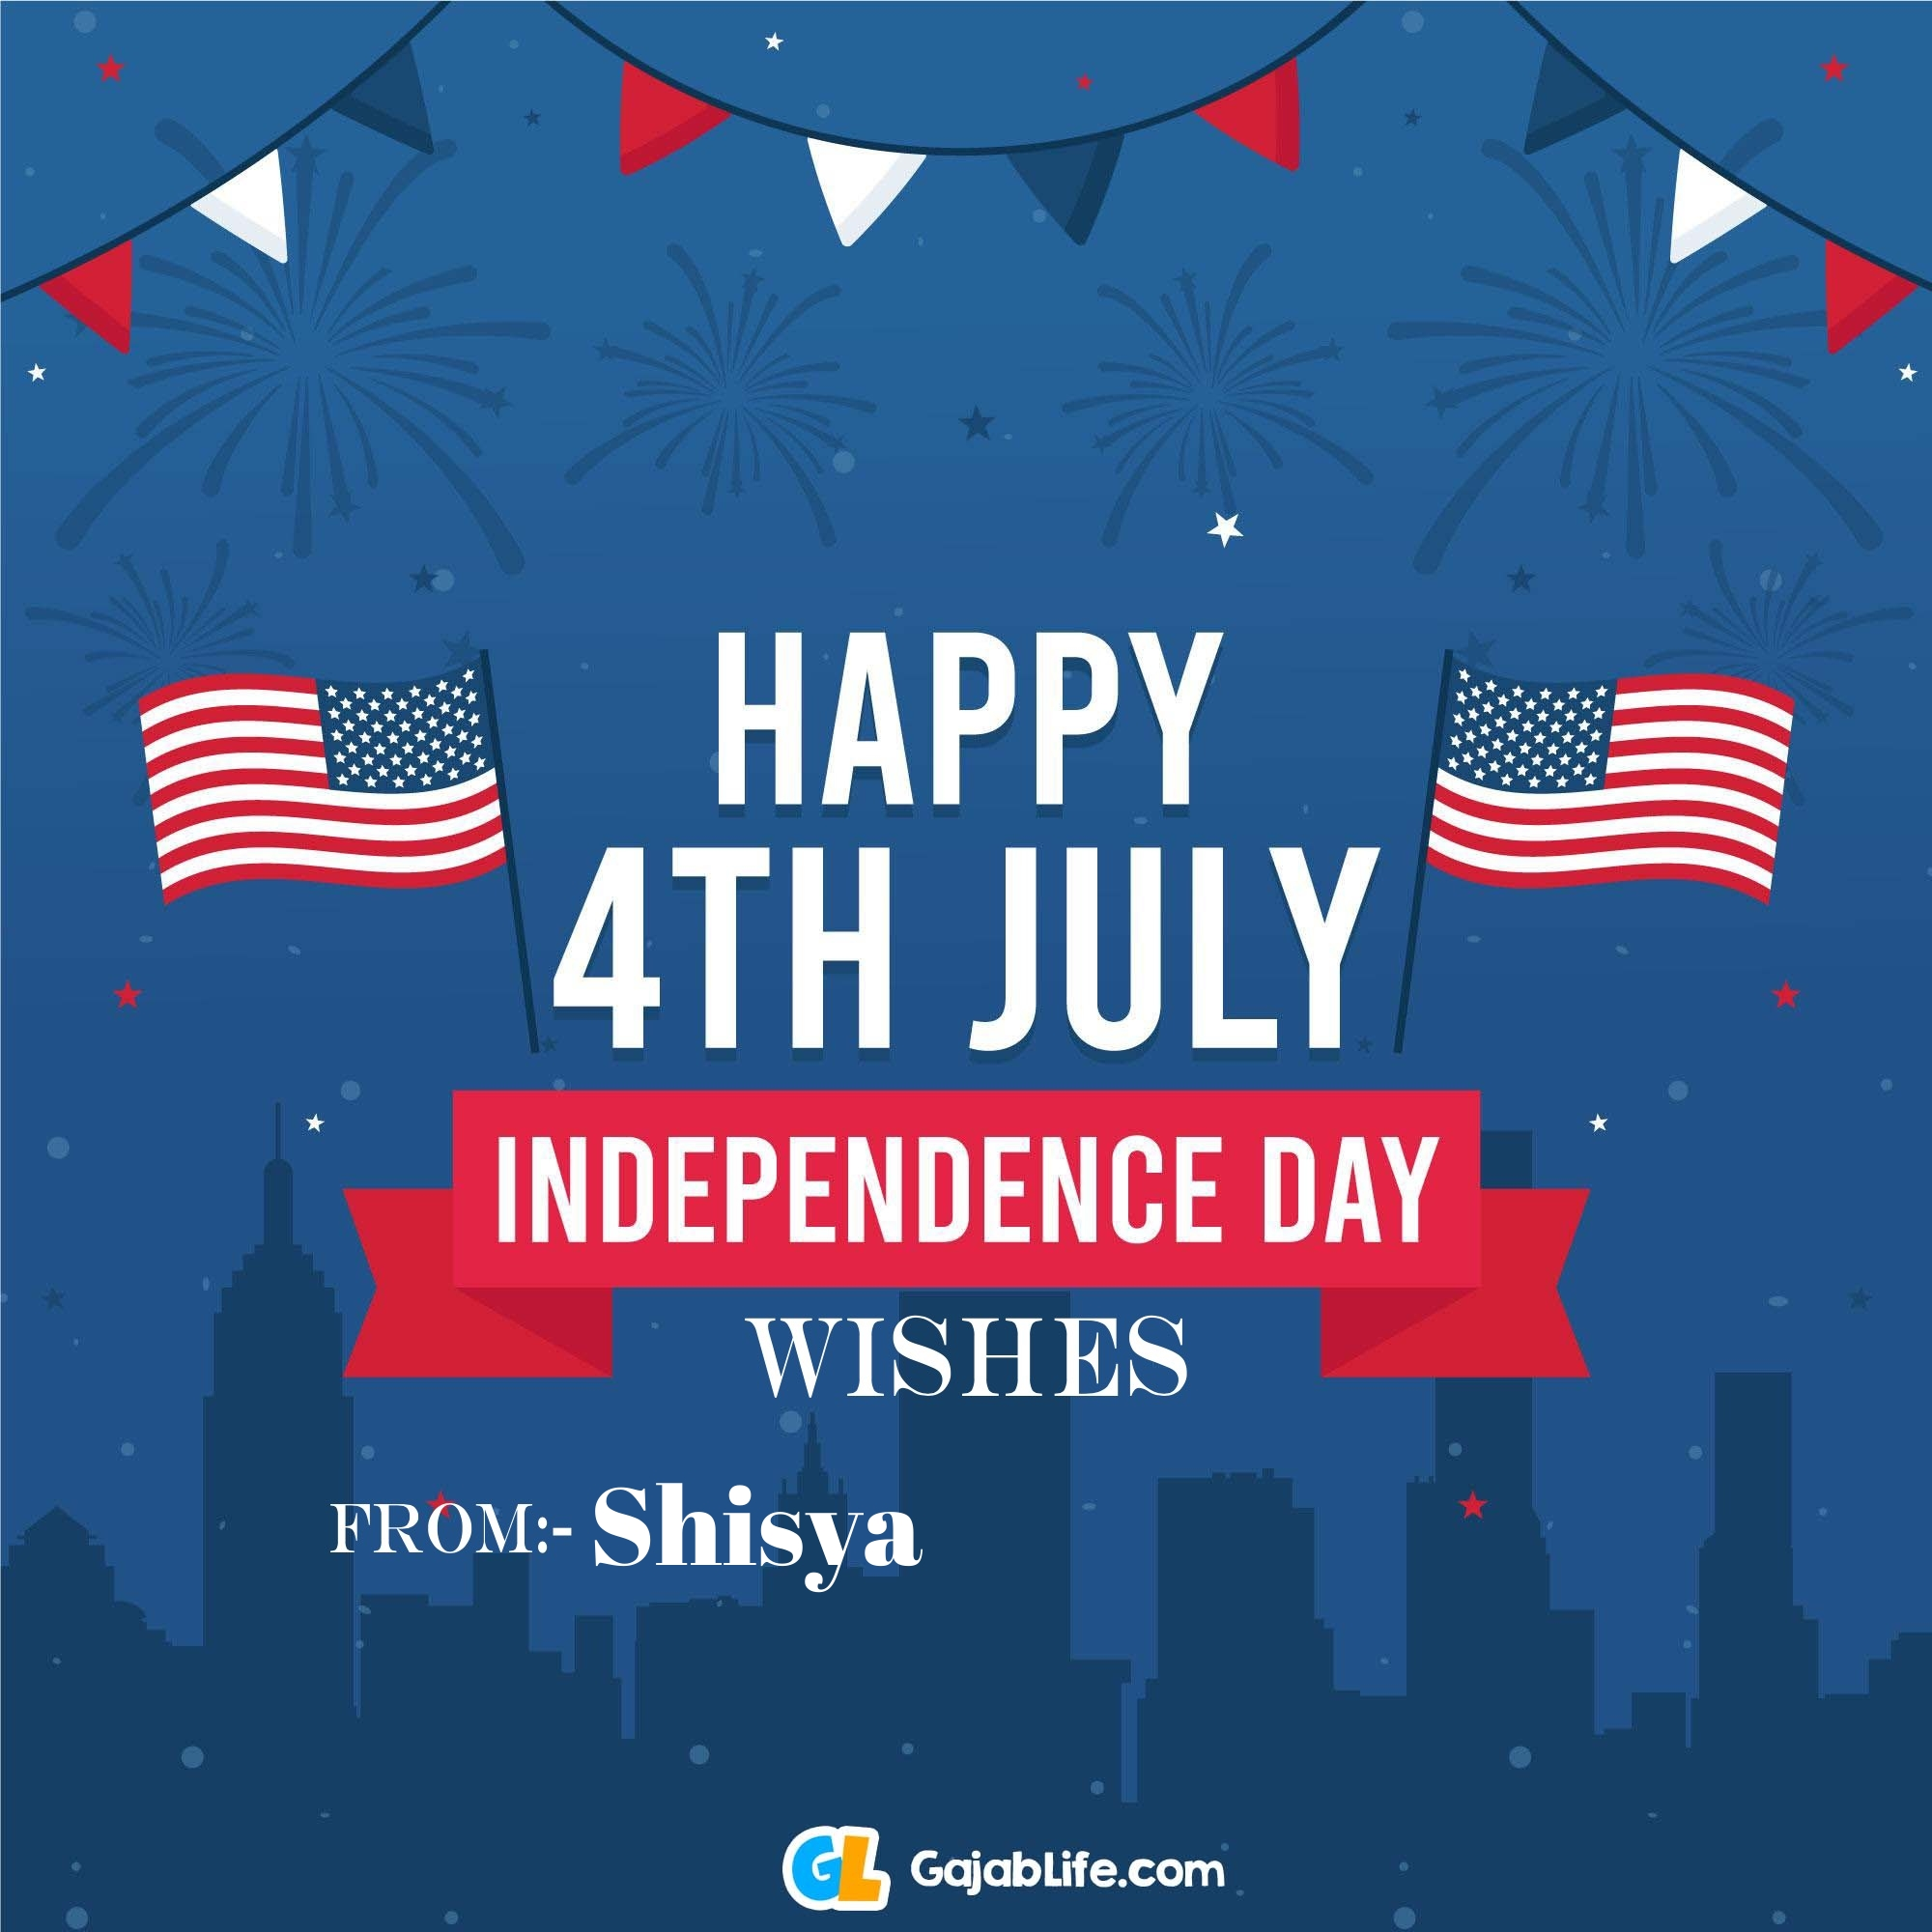 Shisya happy independence day united states of america images